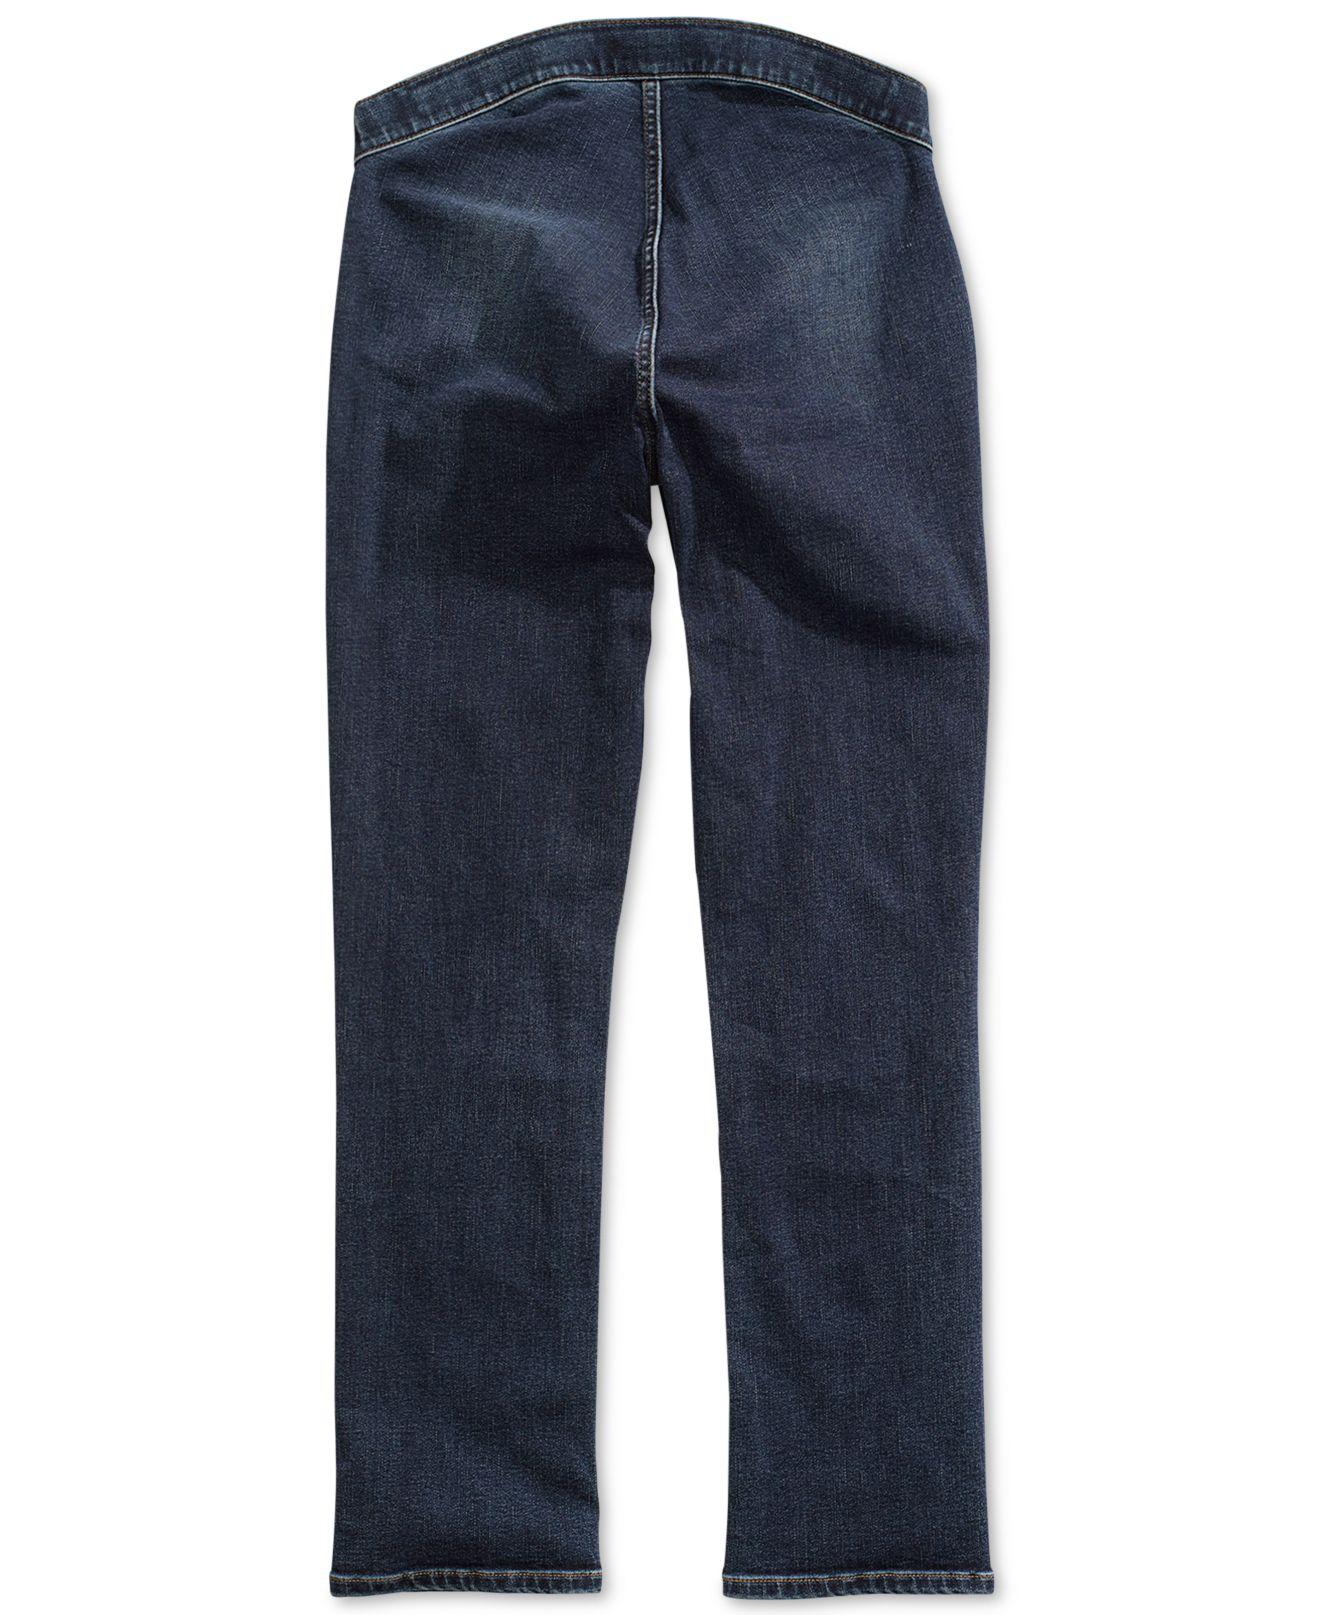 4146659dcbd3 Lyst - Tommy Hilfiger Straight-fit Jeans With Magnetic Zipper in Blue